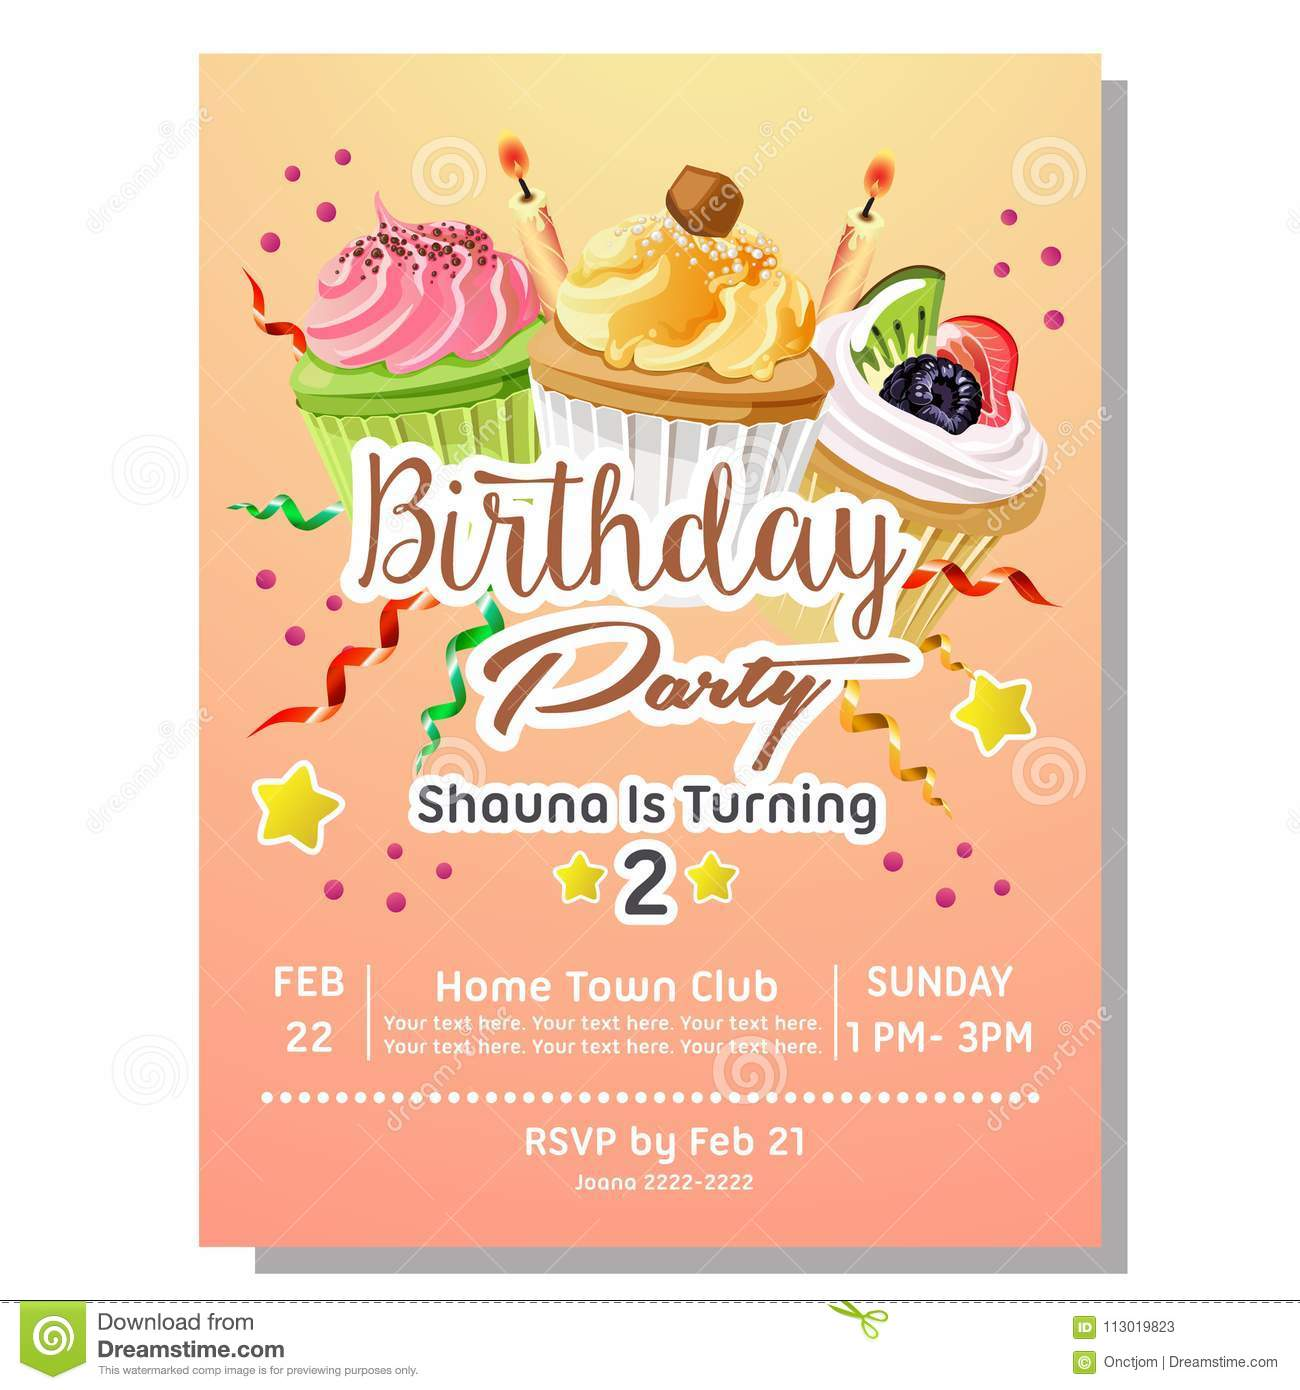 2nd birthday party invitation card with delicious cupcakes stock download 2nd birthday party invitation card with delicious cupcakes stock vector illustration of delicious filmwisefo